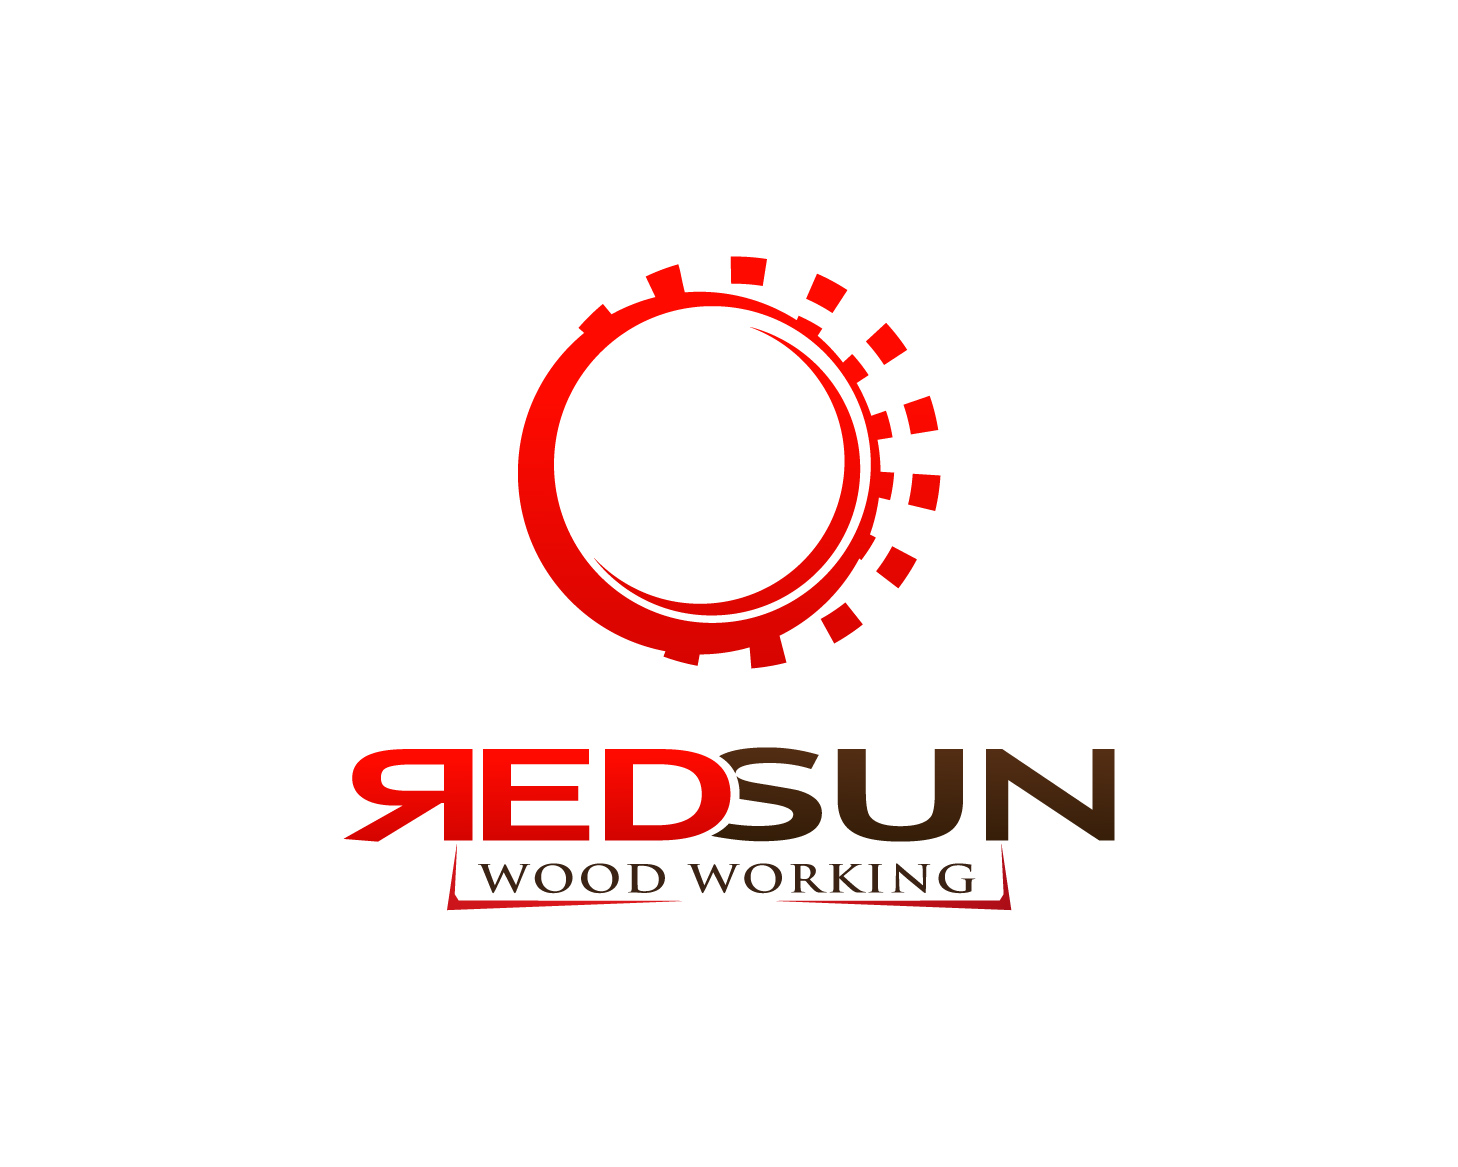 Logo Design by Mikhail Aldonza - Entry No. 137 in the Logo Design Contest Red Sun Woodworking Logo Design.